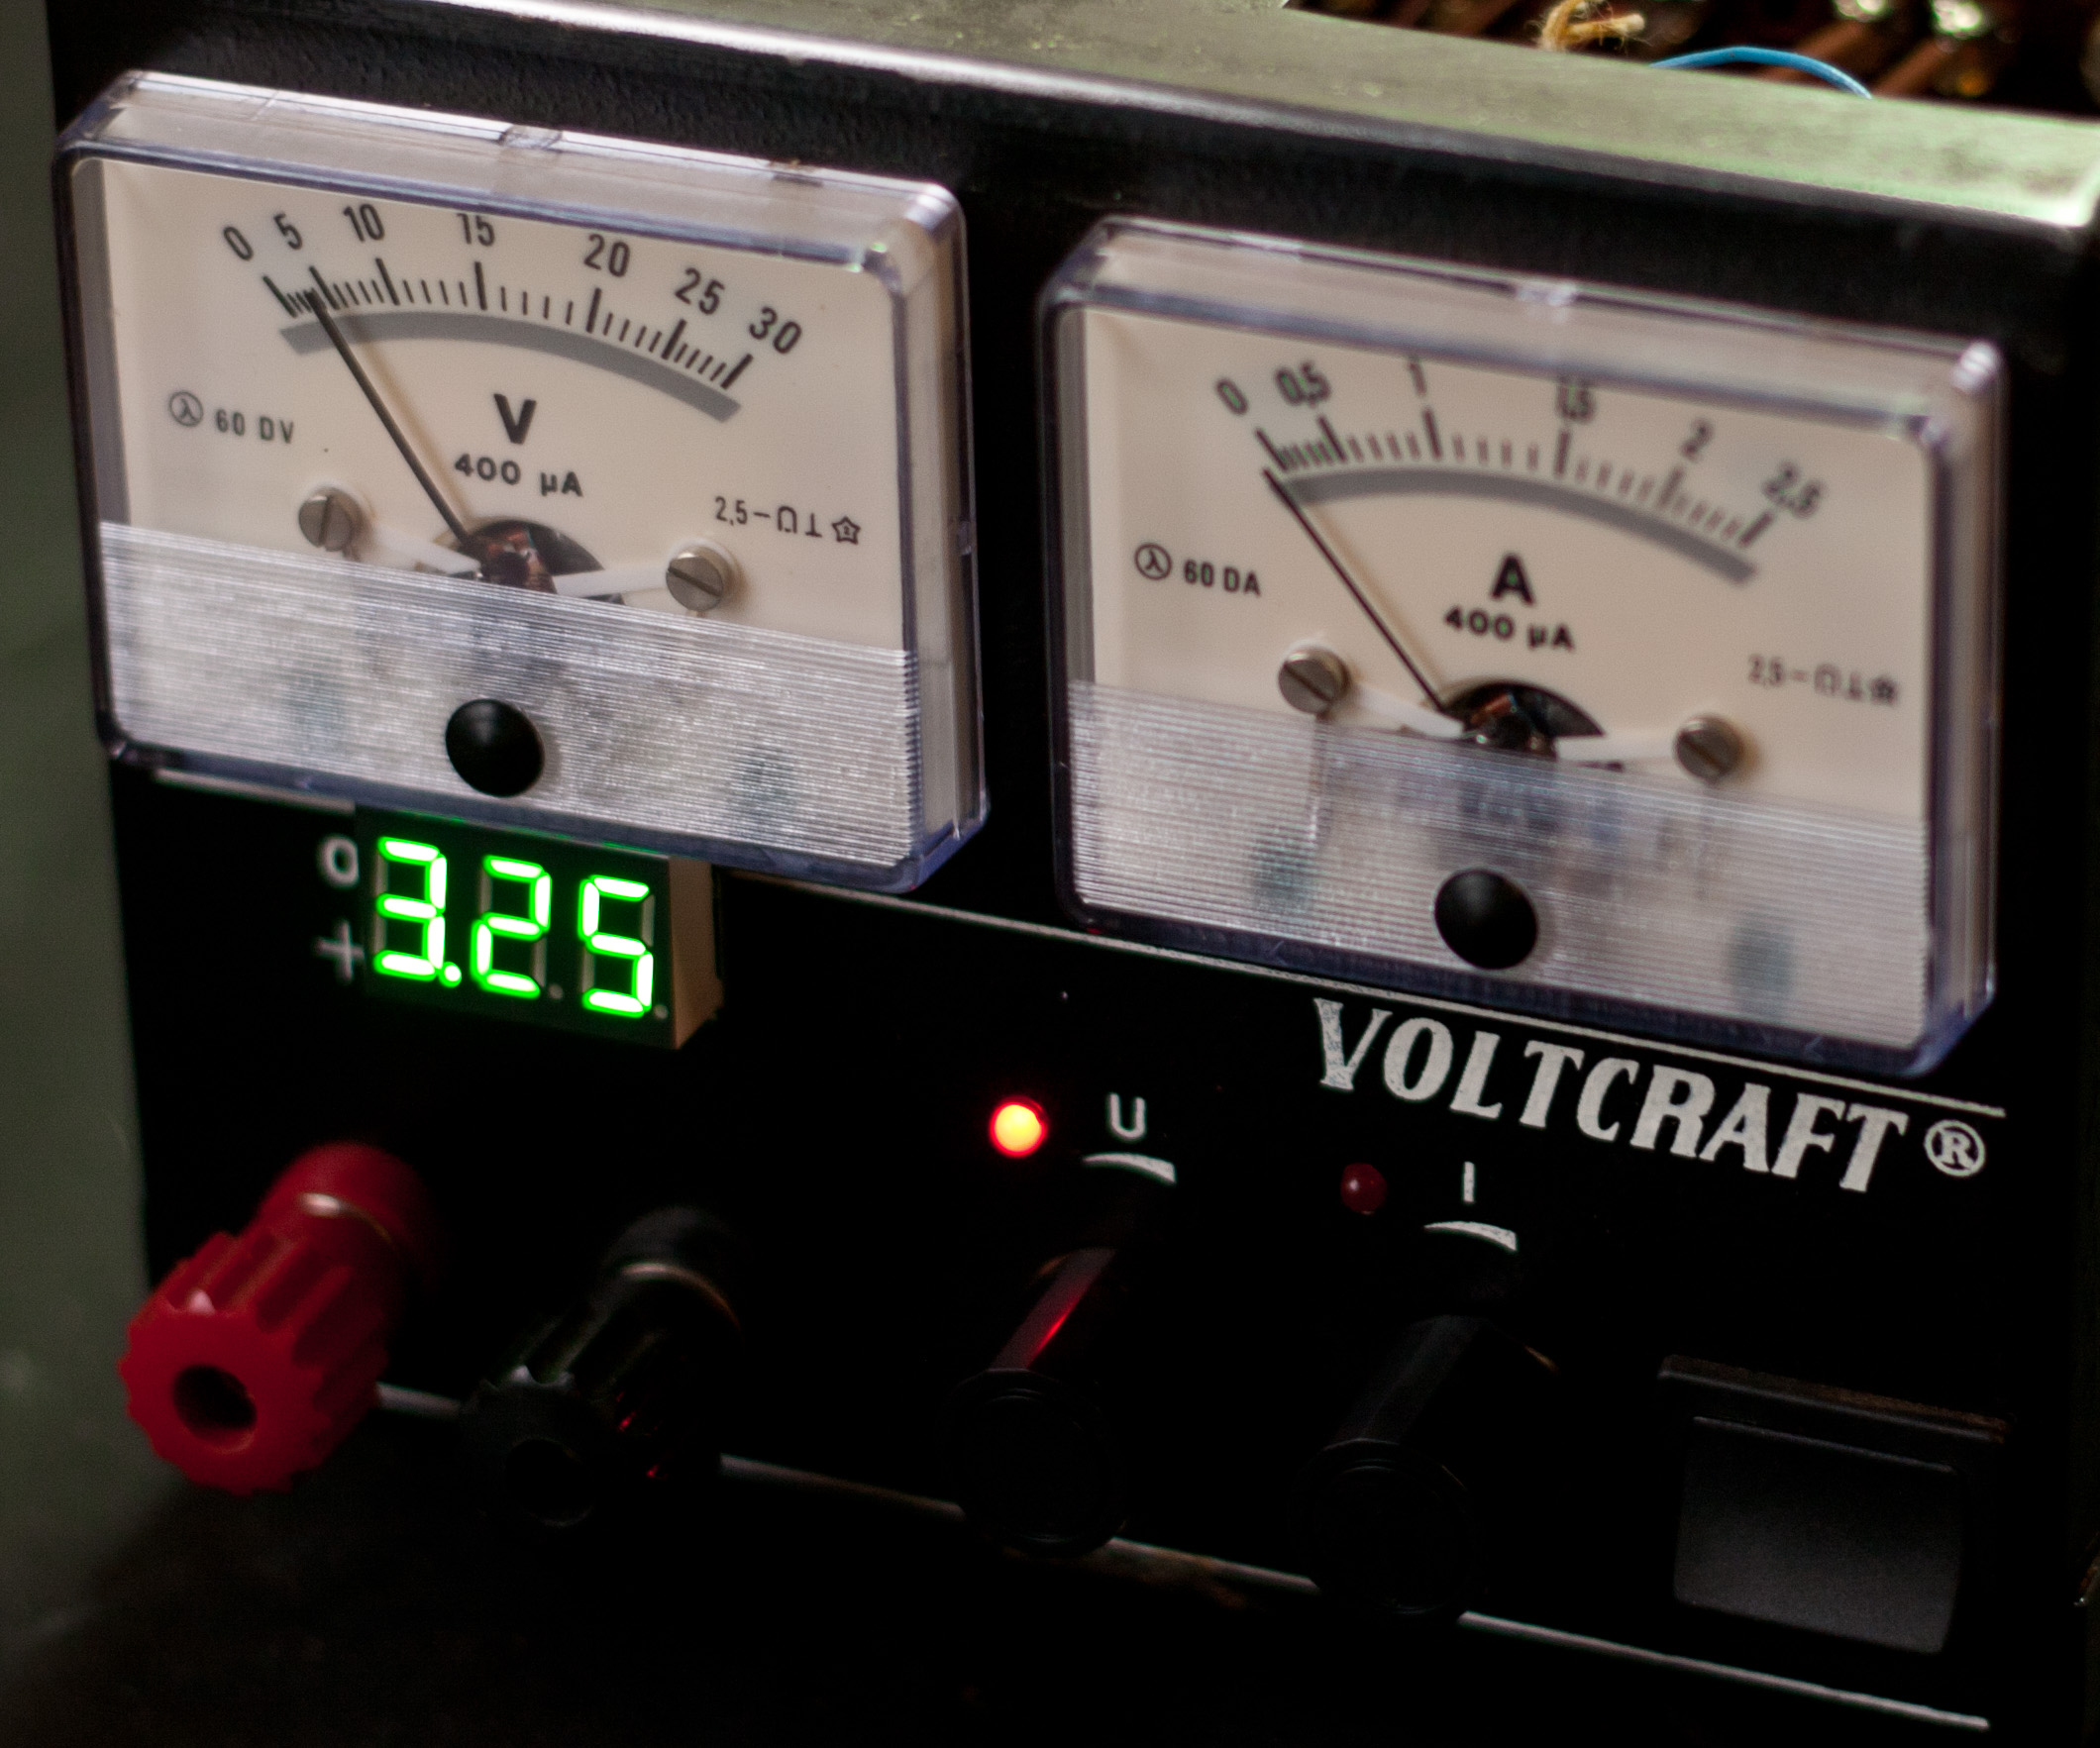 add a digital meter to your old analogical variable PSU